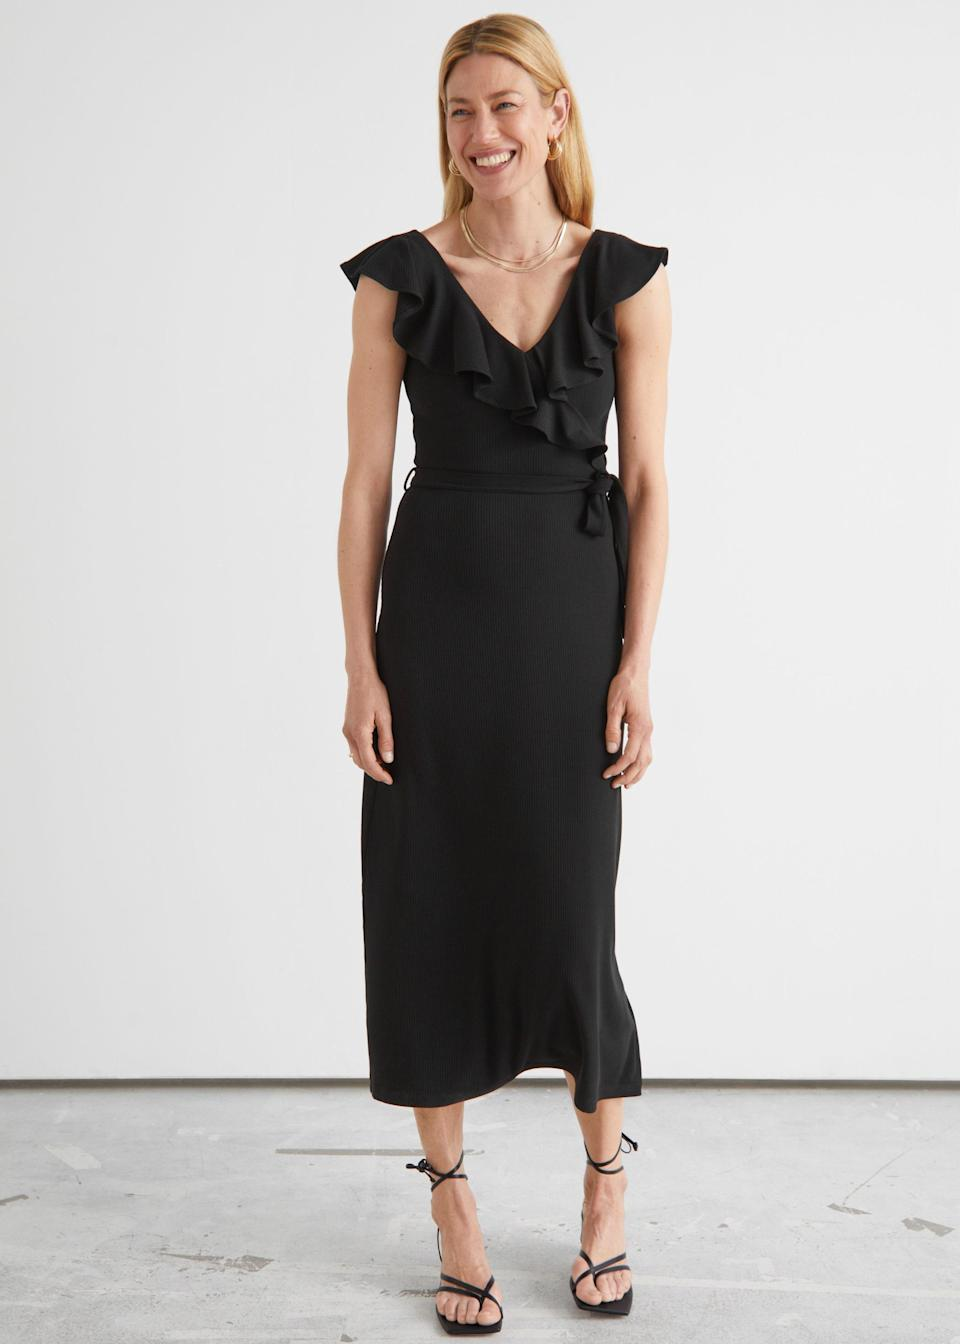 """The LBD will never go out of style—especially at just $59. $59, & Other Stories. <a href=""""https://www.stories.com/en_usd/clothing/dresses/midi-dresses/product.sleeveless-ruffle-neck-midi-dress-black.0974939001.html"""" rel=""""nofollow noopener"""" target=""""_blank"""" data-ylk=""""slk:Get it now!"""" class=""""link rapid-noclick-resp"""">Get it now!</a>"""